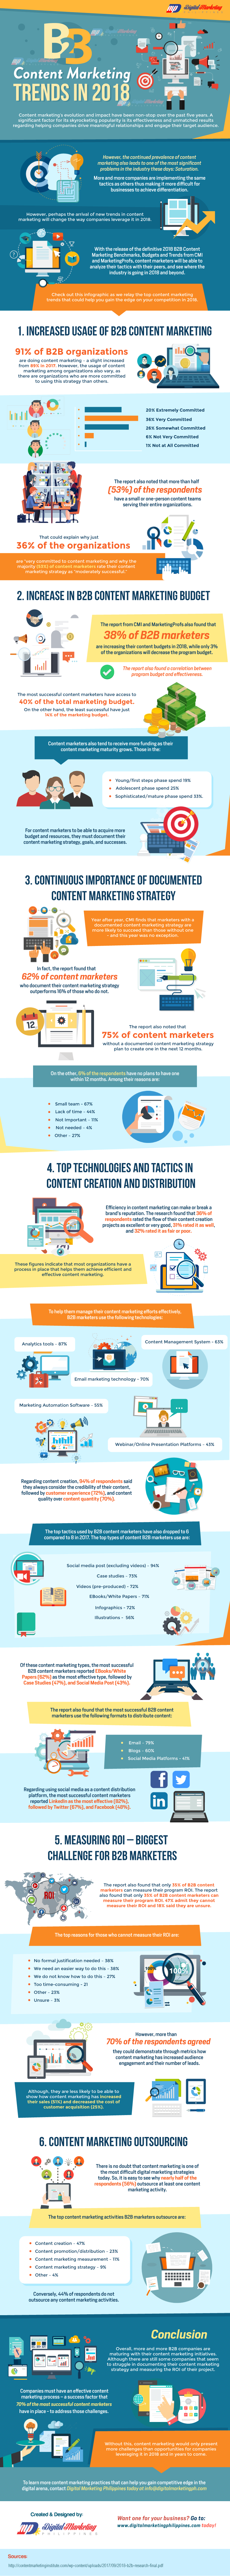 B2B Content Marketing Trends in 2018 [Infographic]